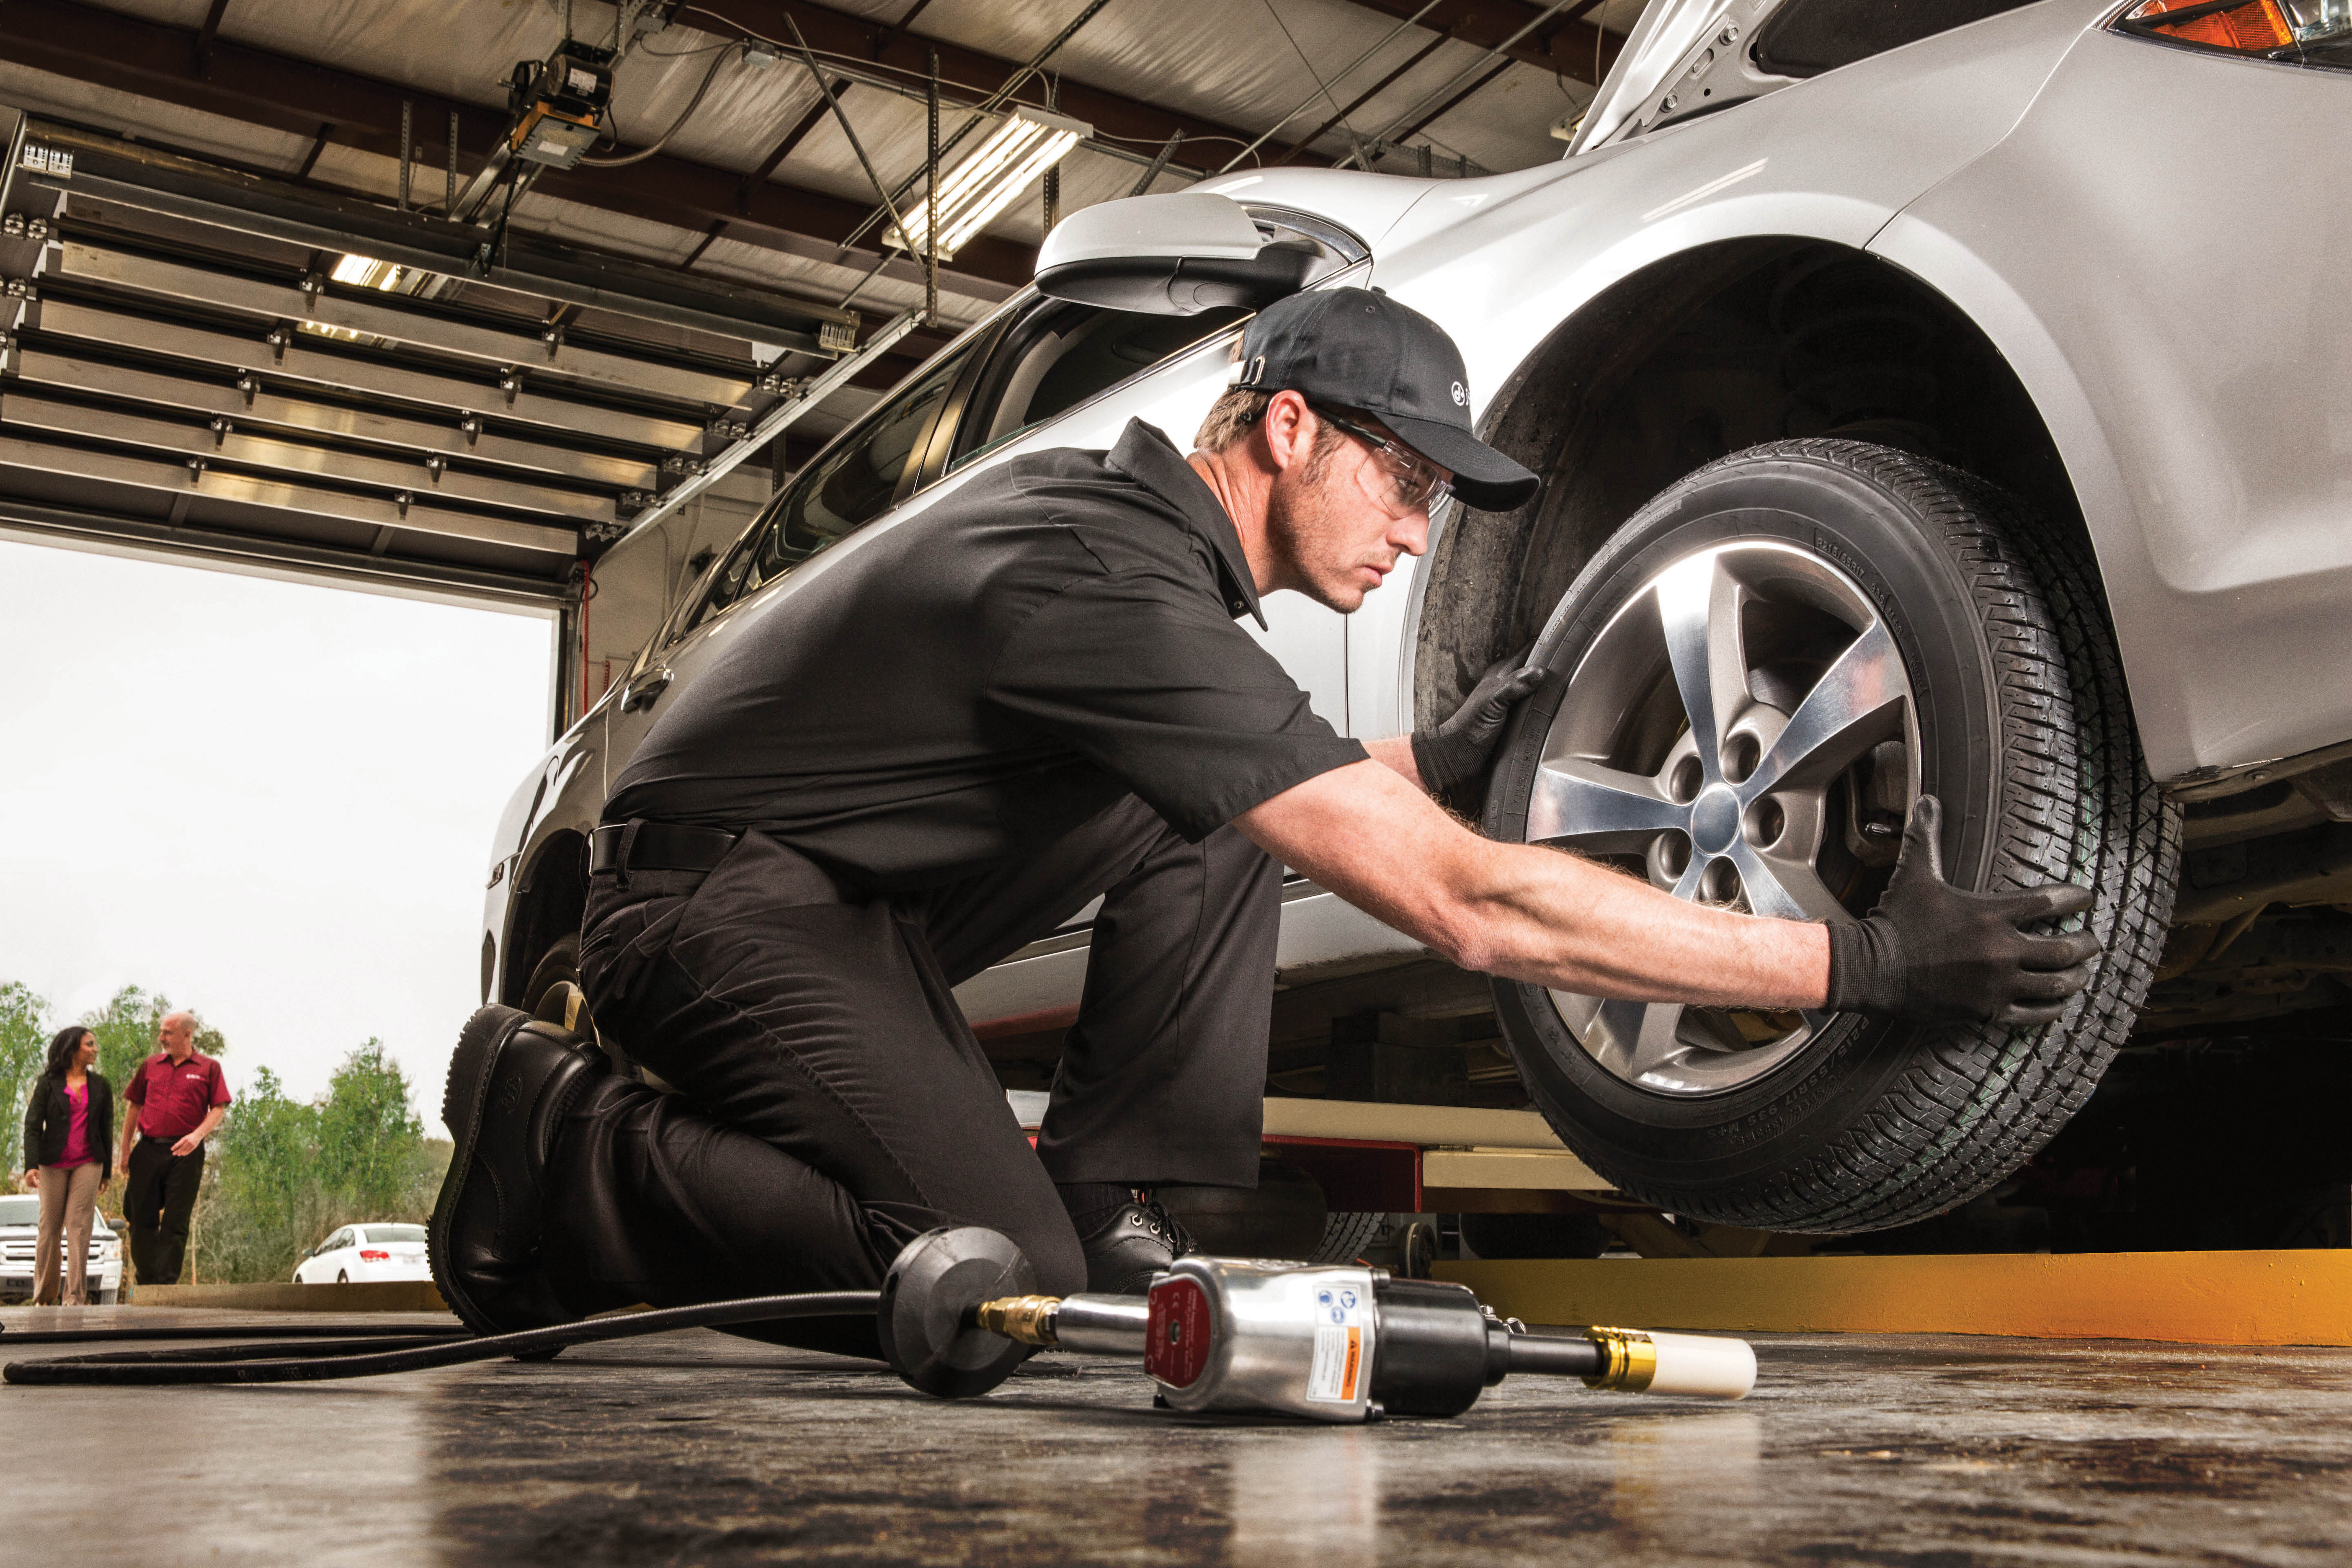 ASE certified technicians from Jiffy Lube